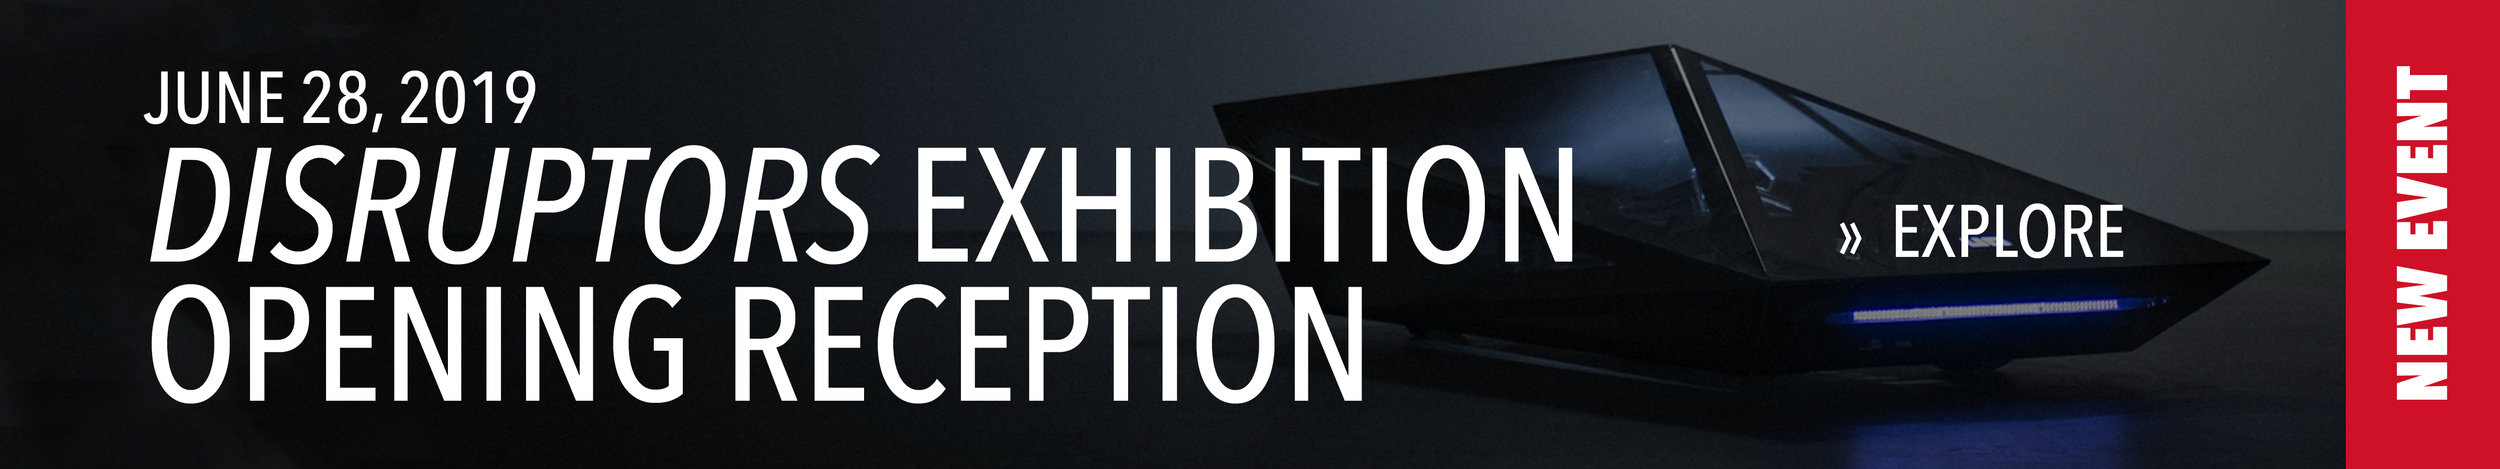 6.28.19 Disruptors Exhibition Reception.jpg